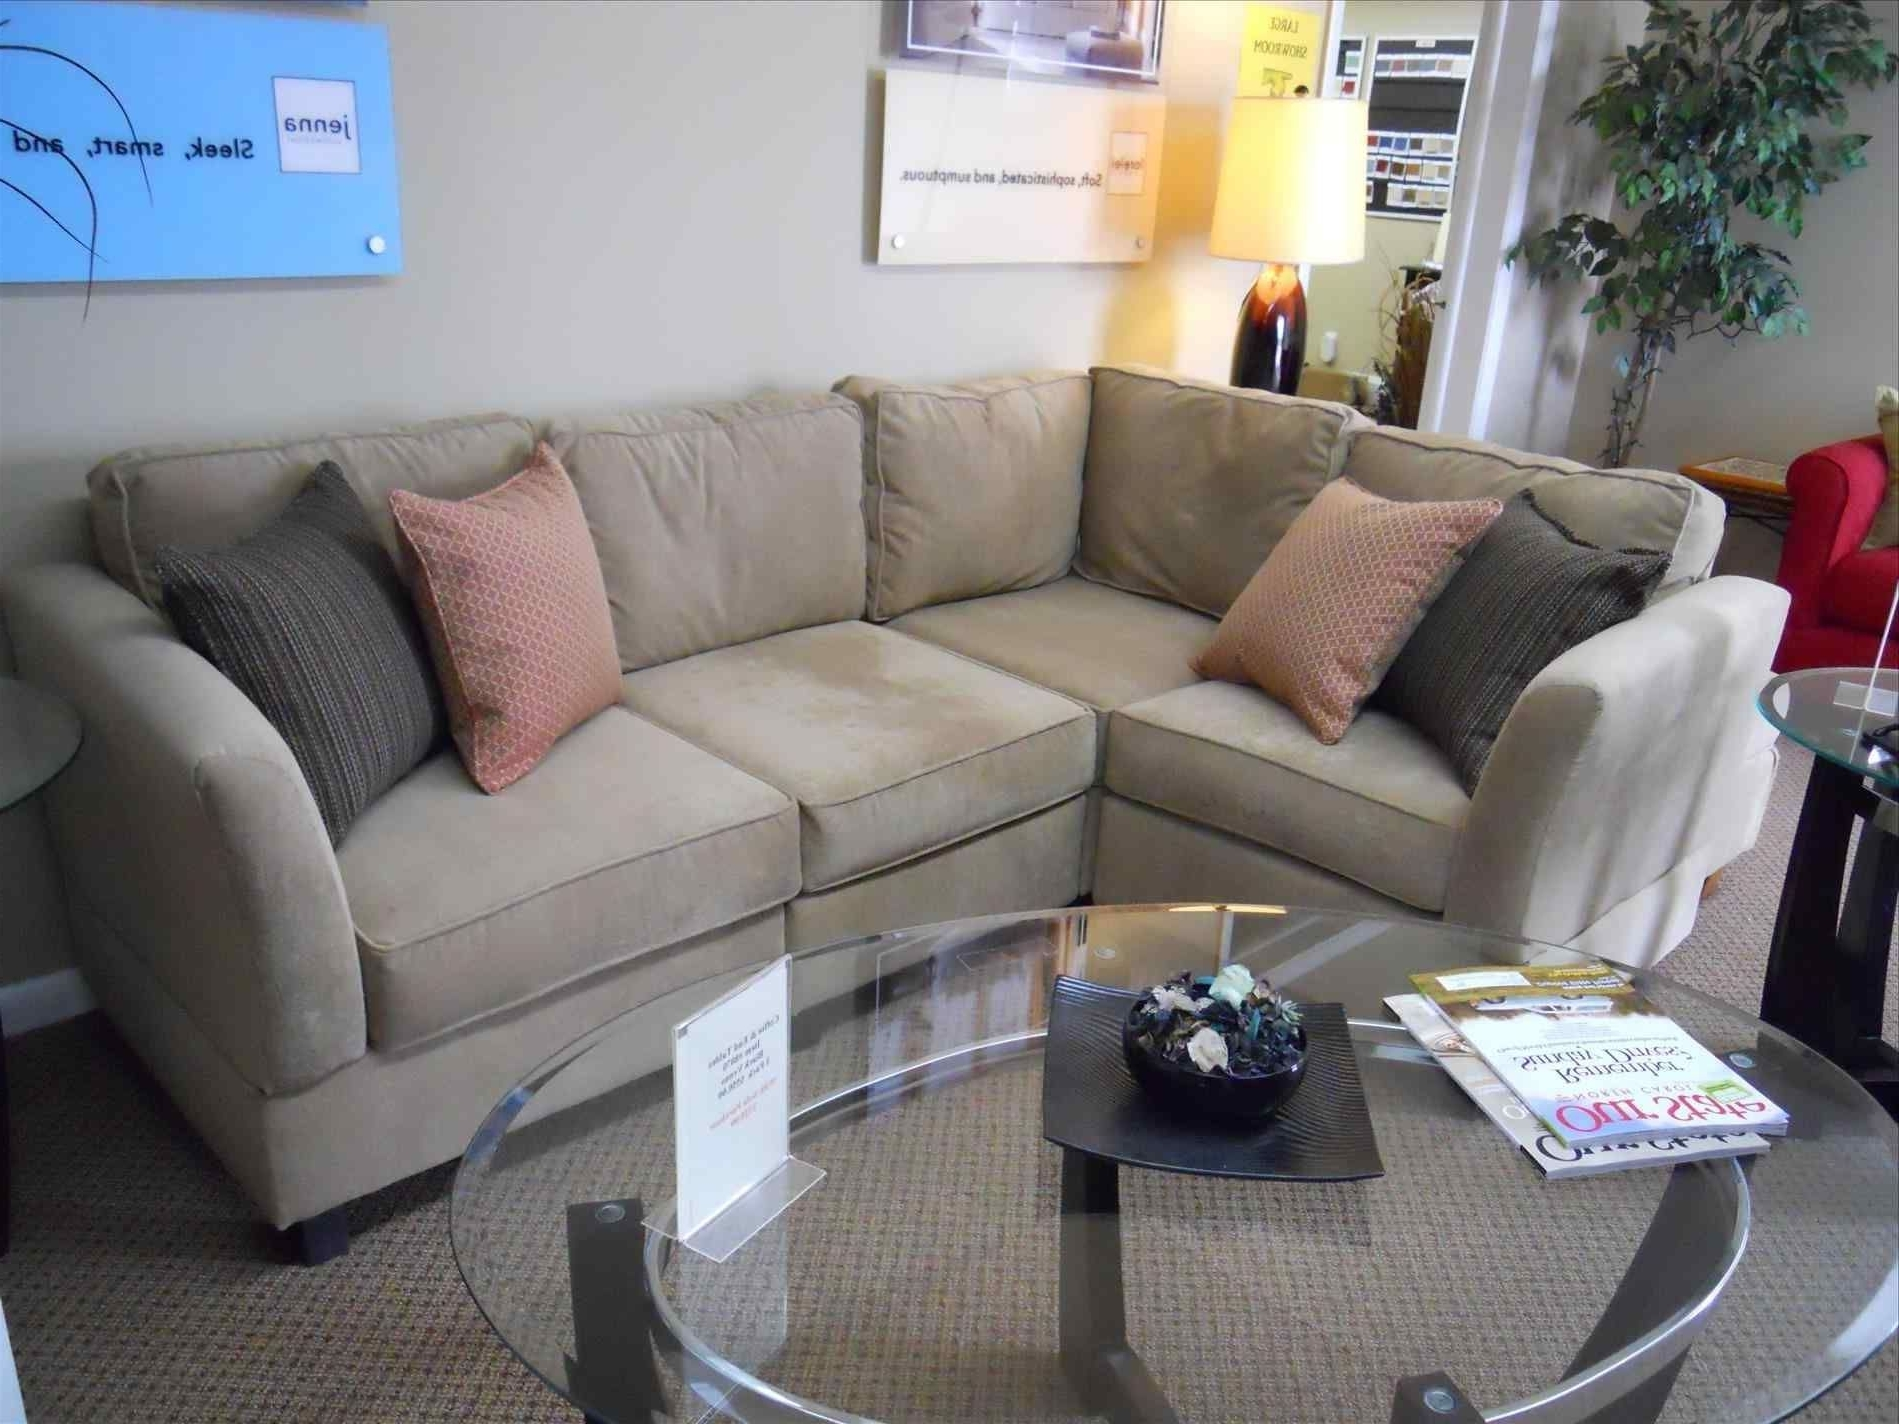 For Cozy Living Room Lazy Boy Chair Home Designs Lazy Sectional Within 2018 Modern Sectional Sofas For Small Spaces (View 6 of 20)